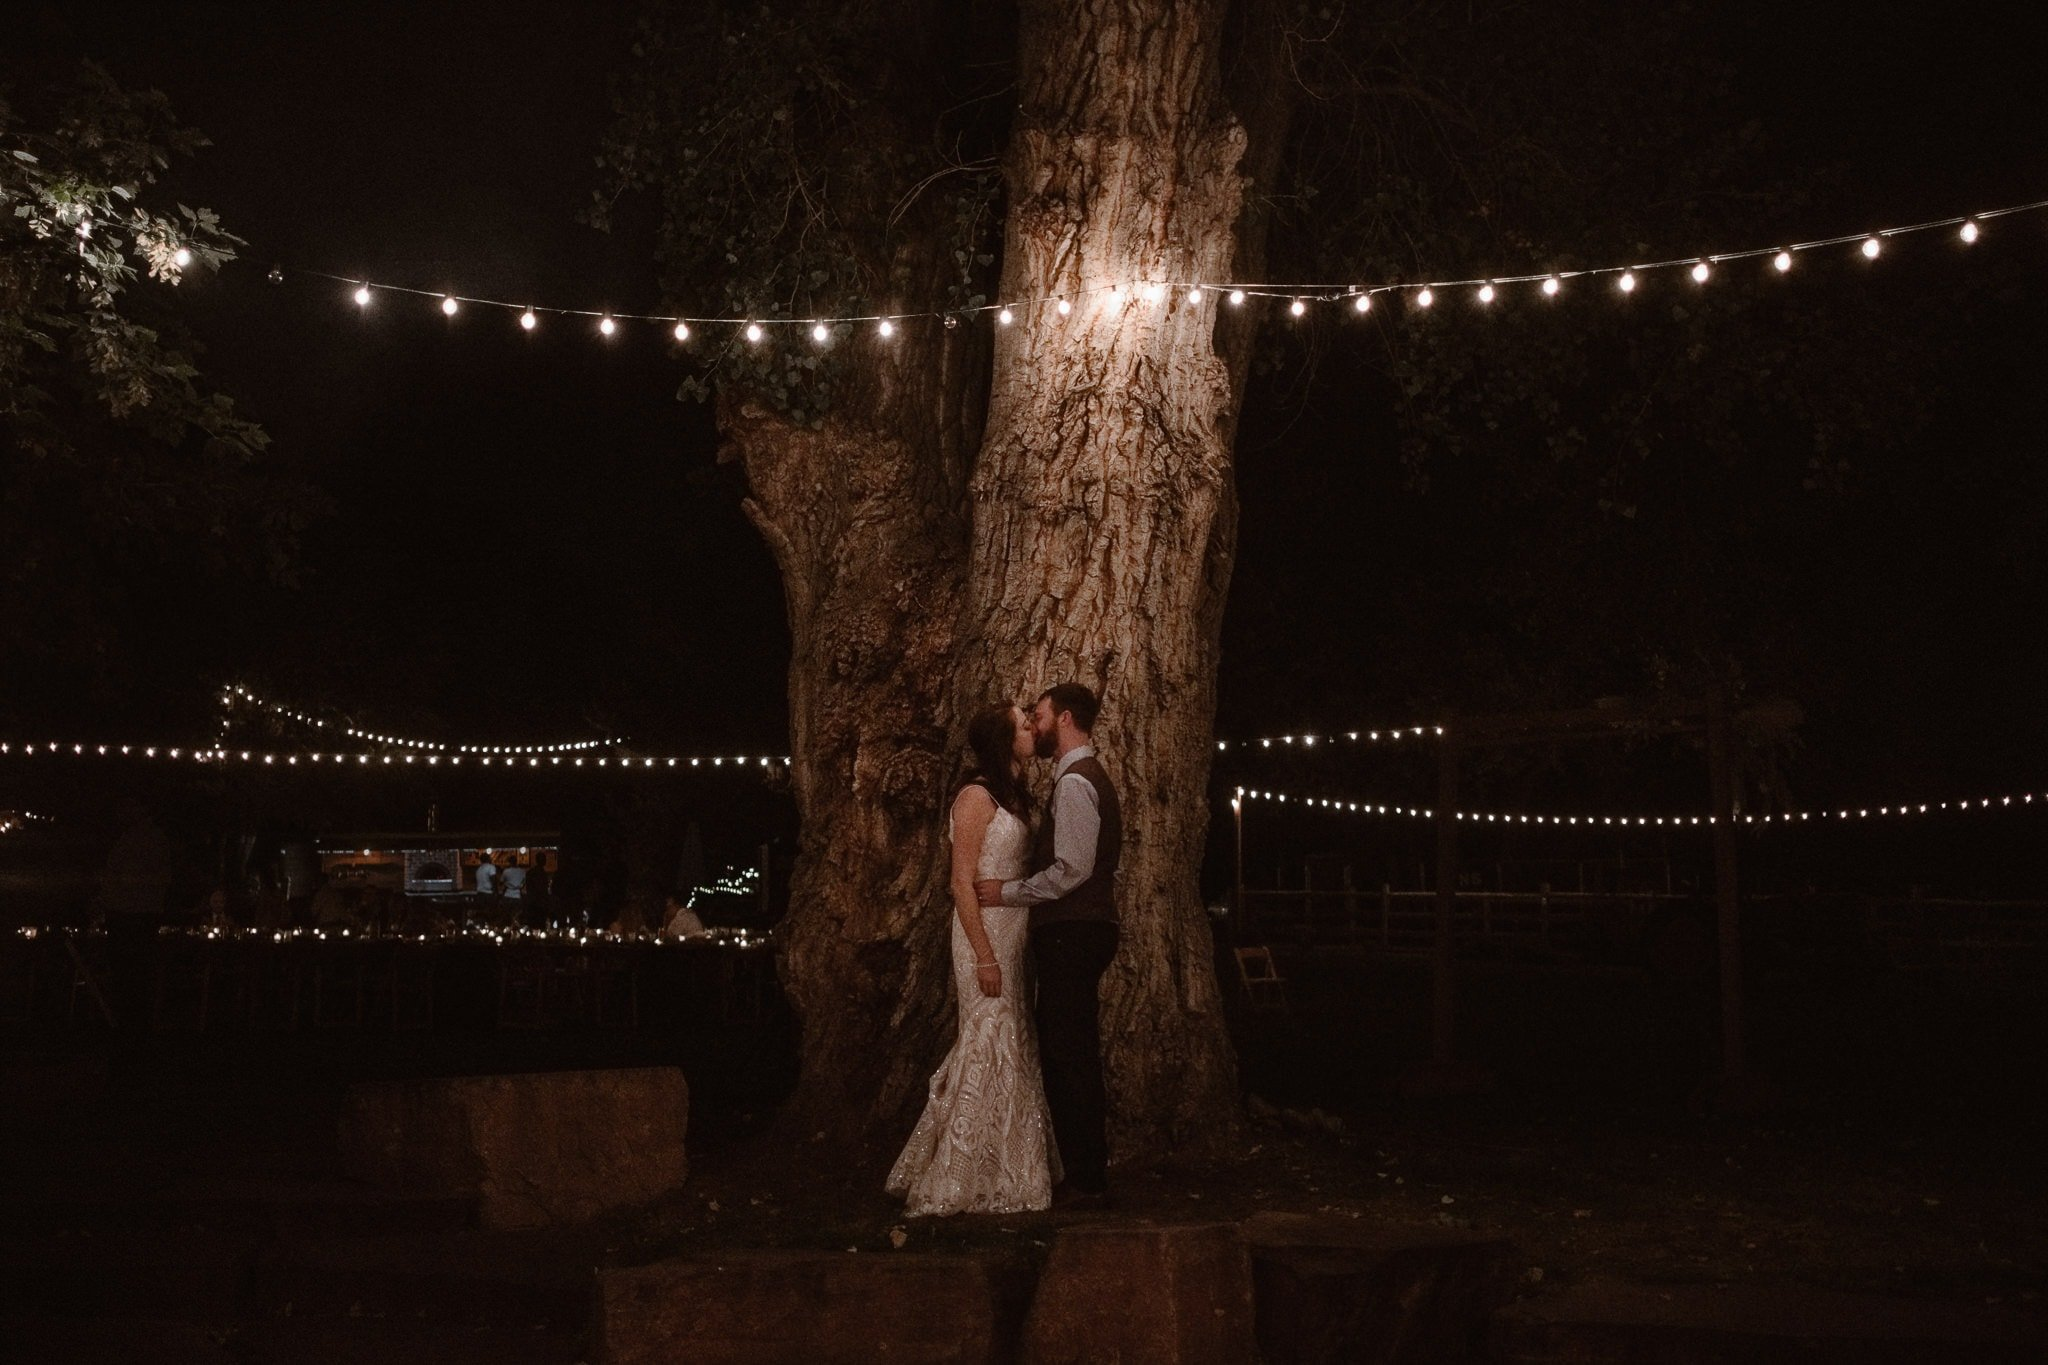 Lyons Farmette wedding photographer, Colorado intimate wedding photographer, bride and groom at night under string lights